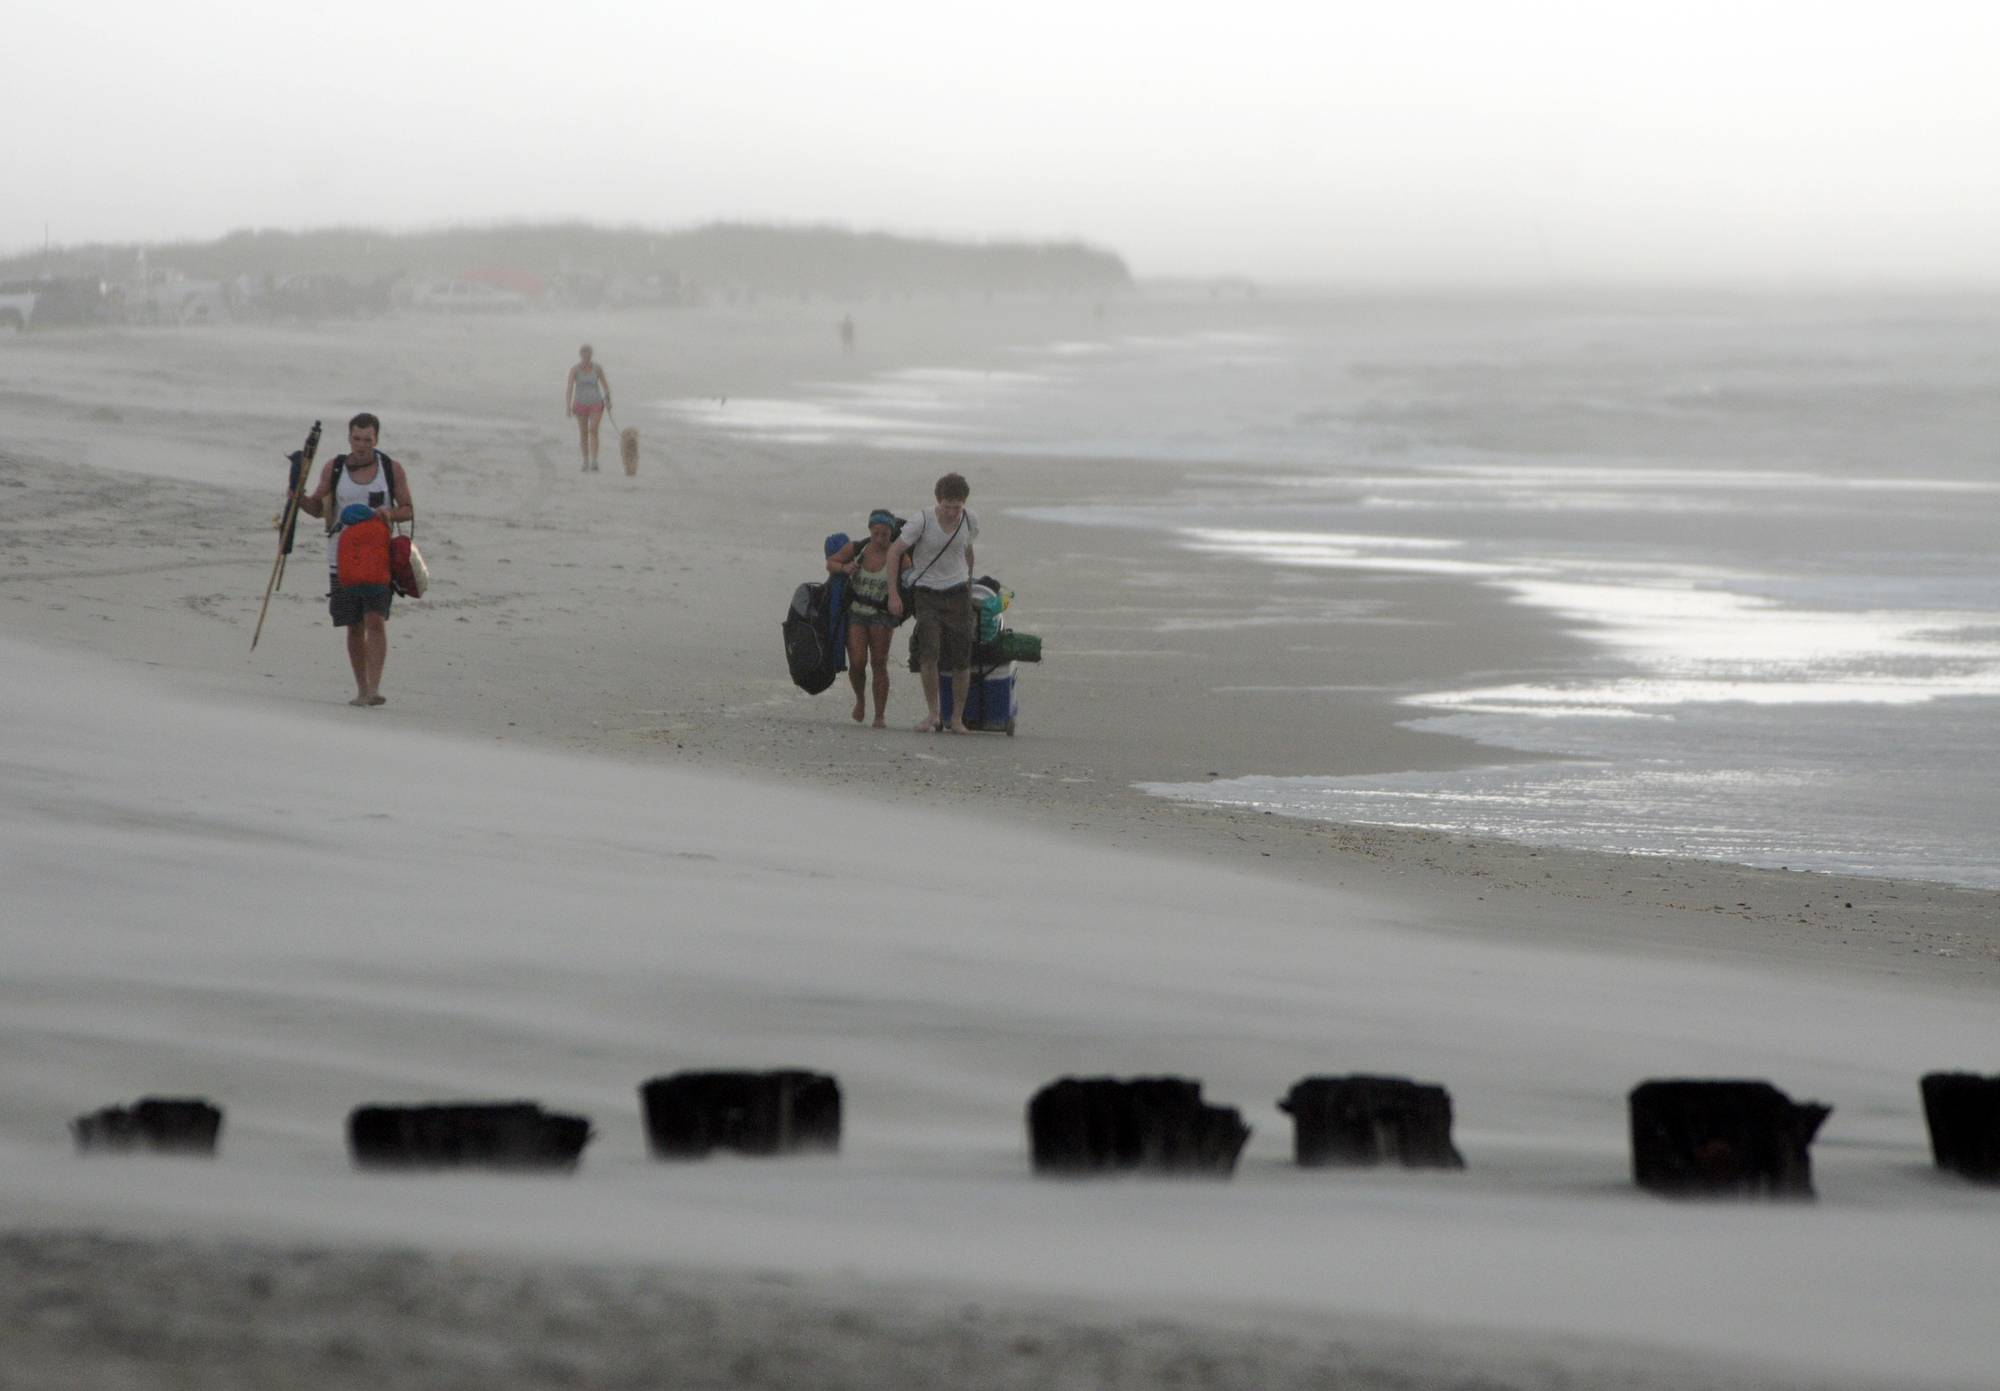 Clouds and rains move in as beachgoers leave Freeman Park at the north end of Carolina Beach, N.C., Thursday. Residents along the coast of North Carolina are bracing for the arrival of the Hurricane Arthur, which threatens to give the state a glancing blow on Independence Day.